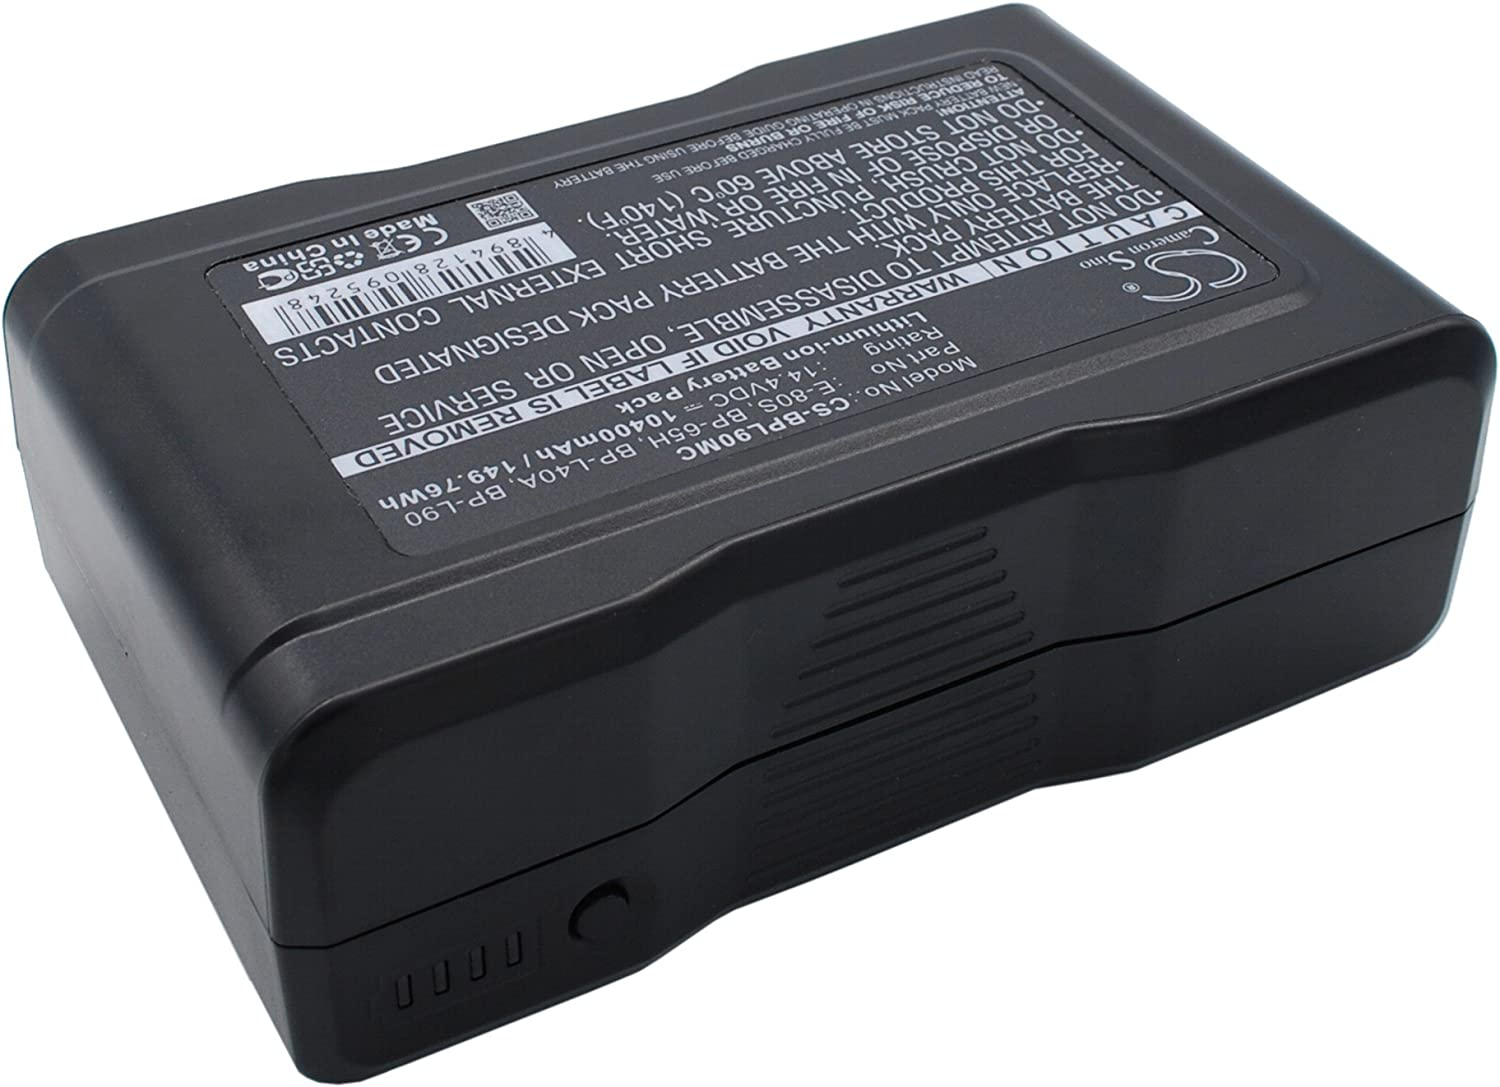 E-80 E-80S 10400mAh Battery for IDX BP-65H